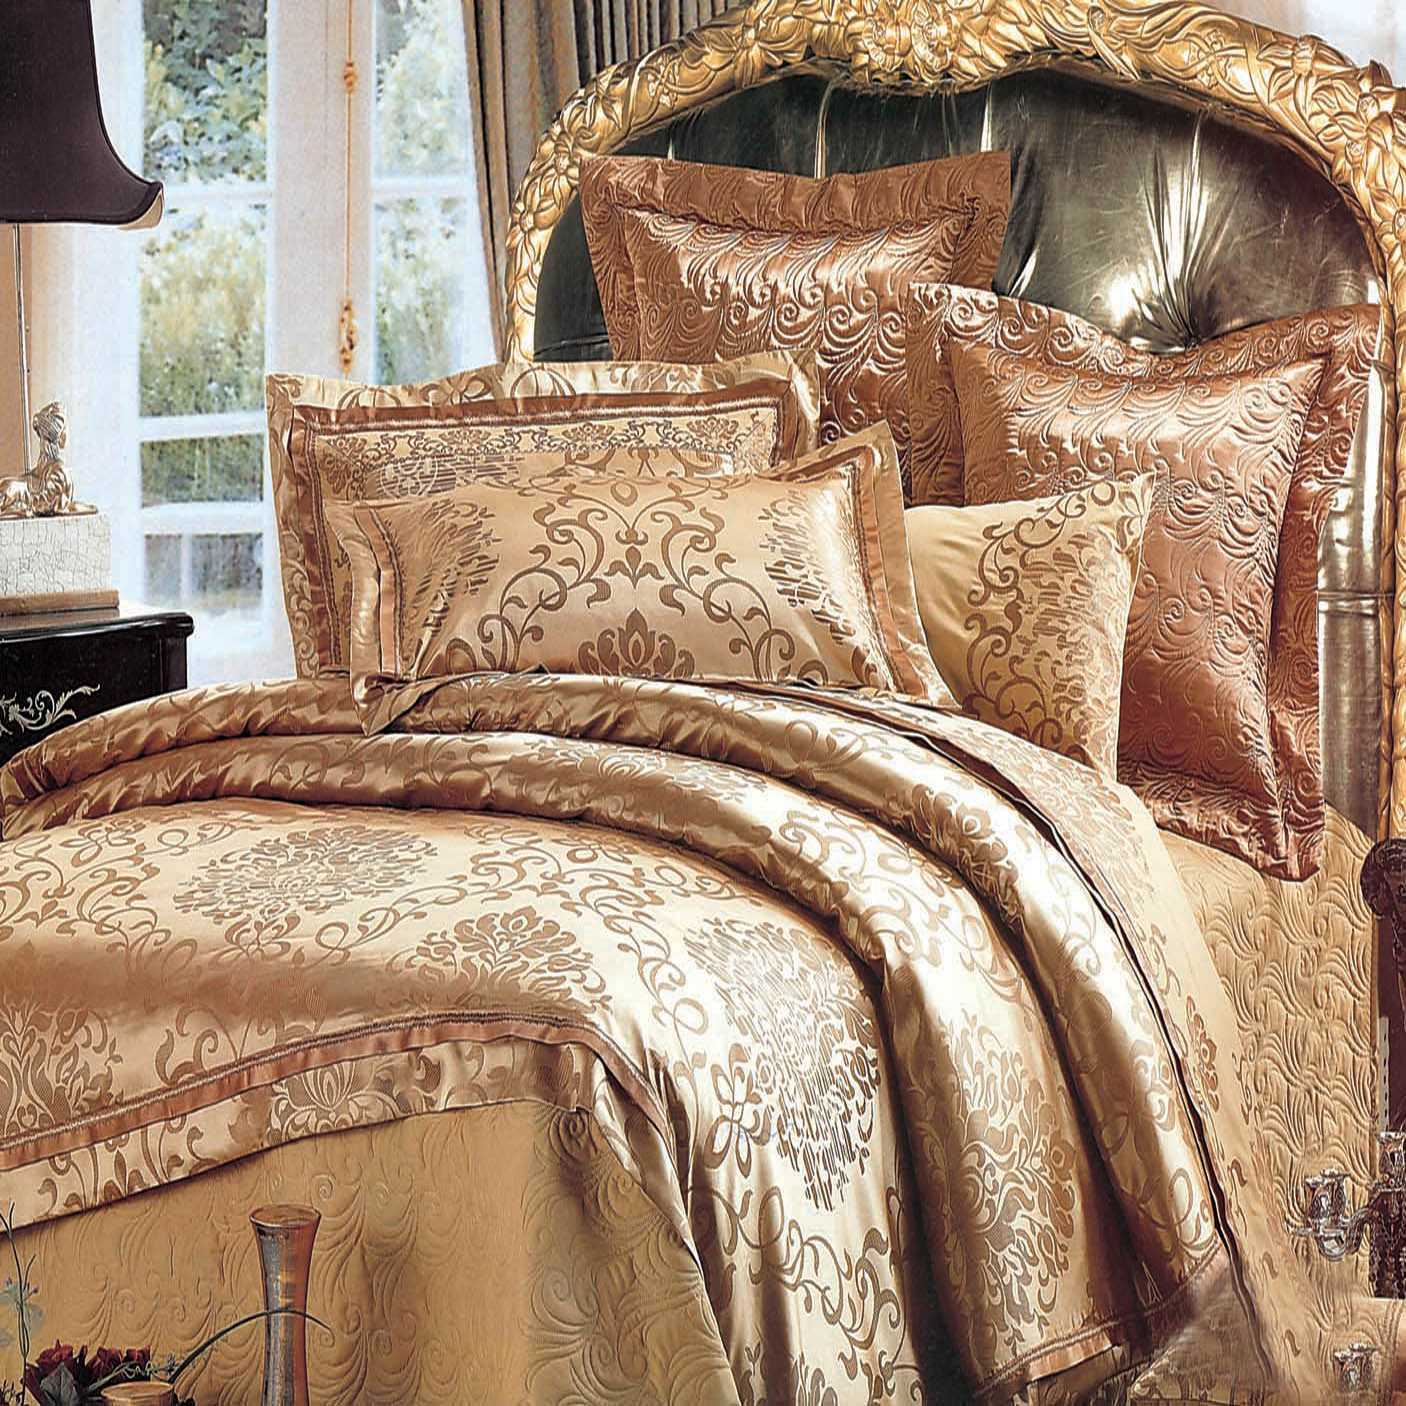 Cheap king size duvet, Buy Quality jacquard bedlinen directly from China cotton bedding set Suppliers: NEW Jacquard Bedlinen Queen King Size Duvet cover Set Imitation Silk Cotton Bedding Sets Luxury gold Colour UK FULL Size Enjoy Free Shipping Worldwide! Limited Time Sale Easy Return/5(44).